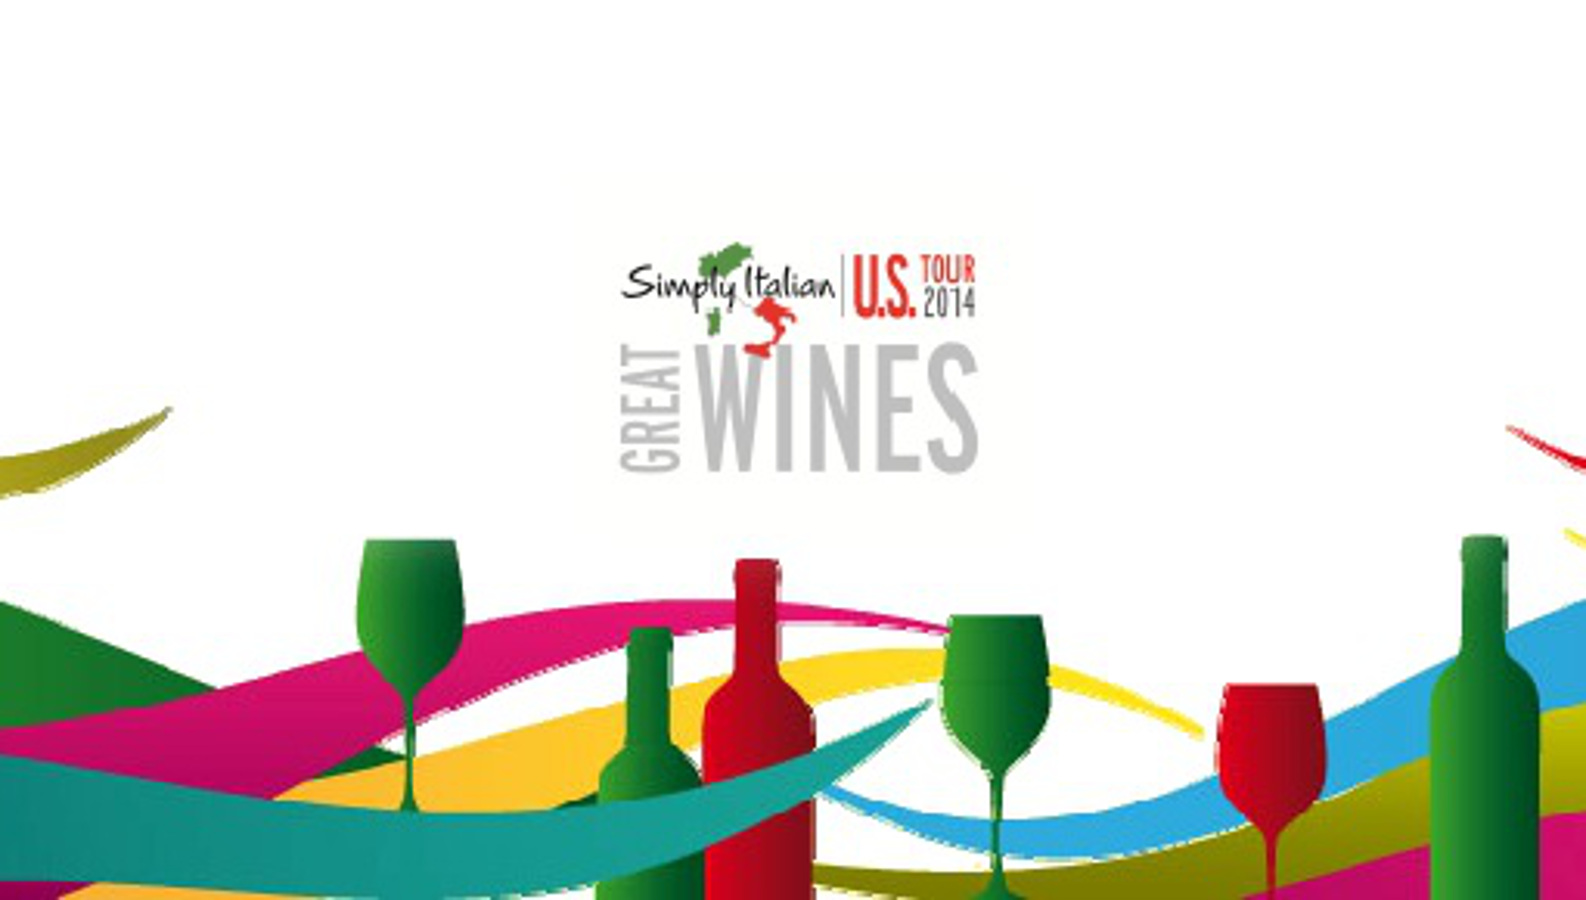 Simply Italian Great Wines US Tour